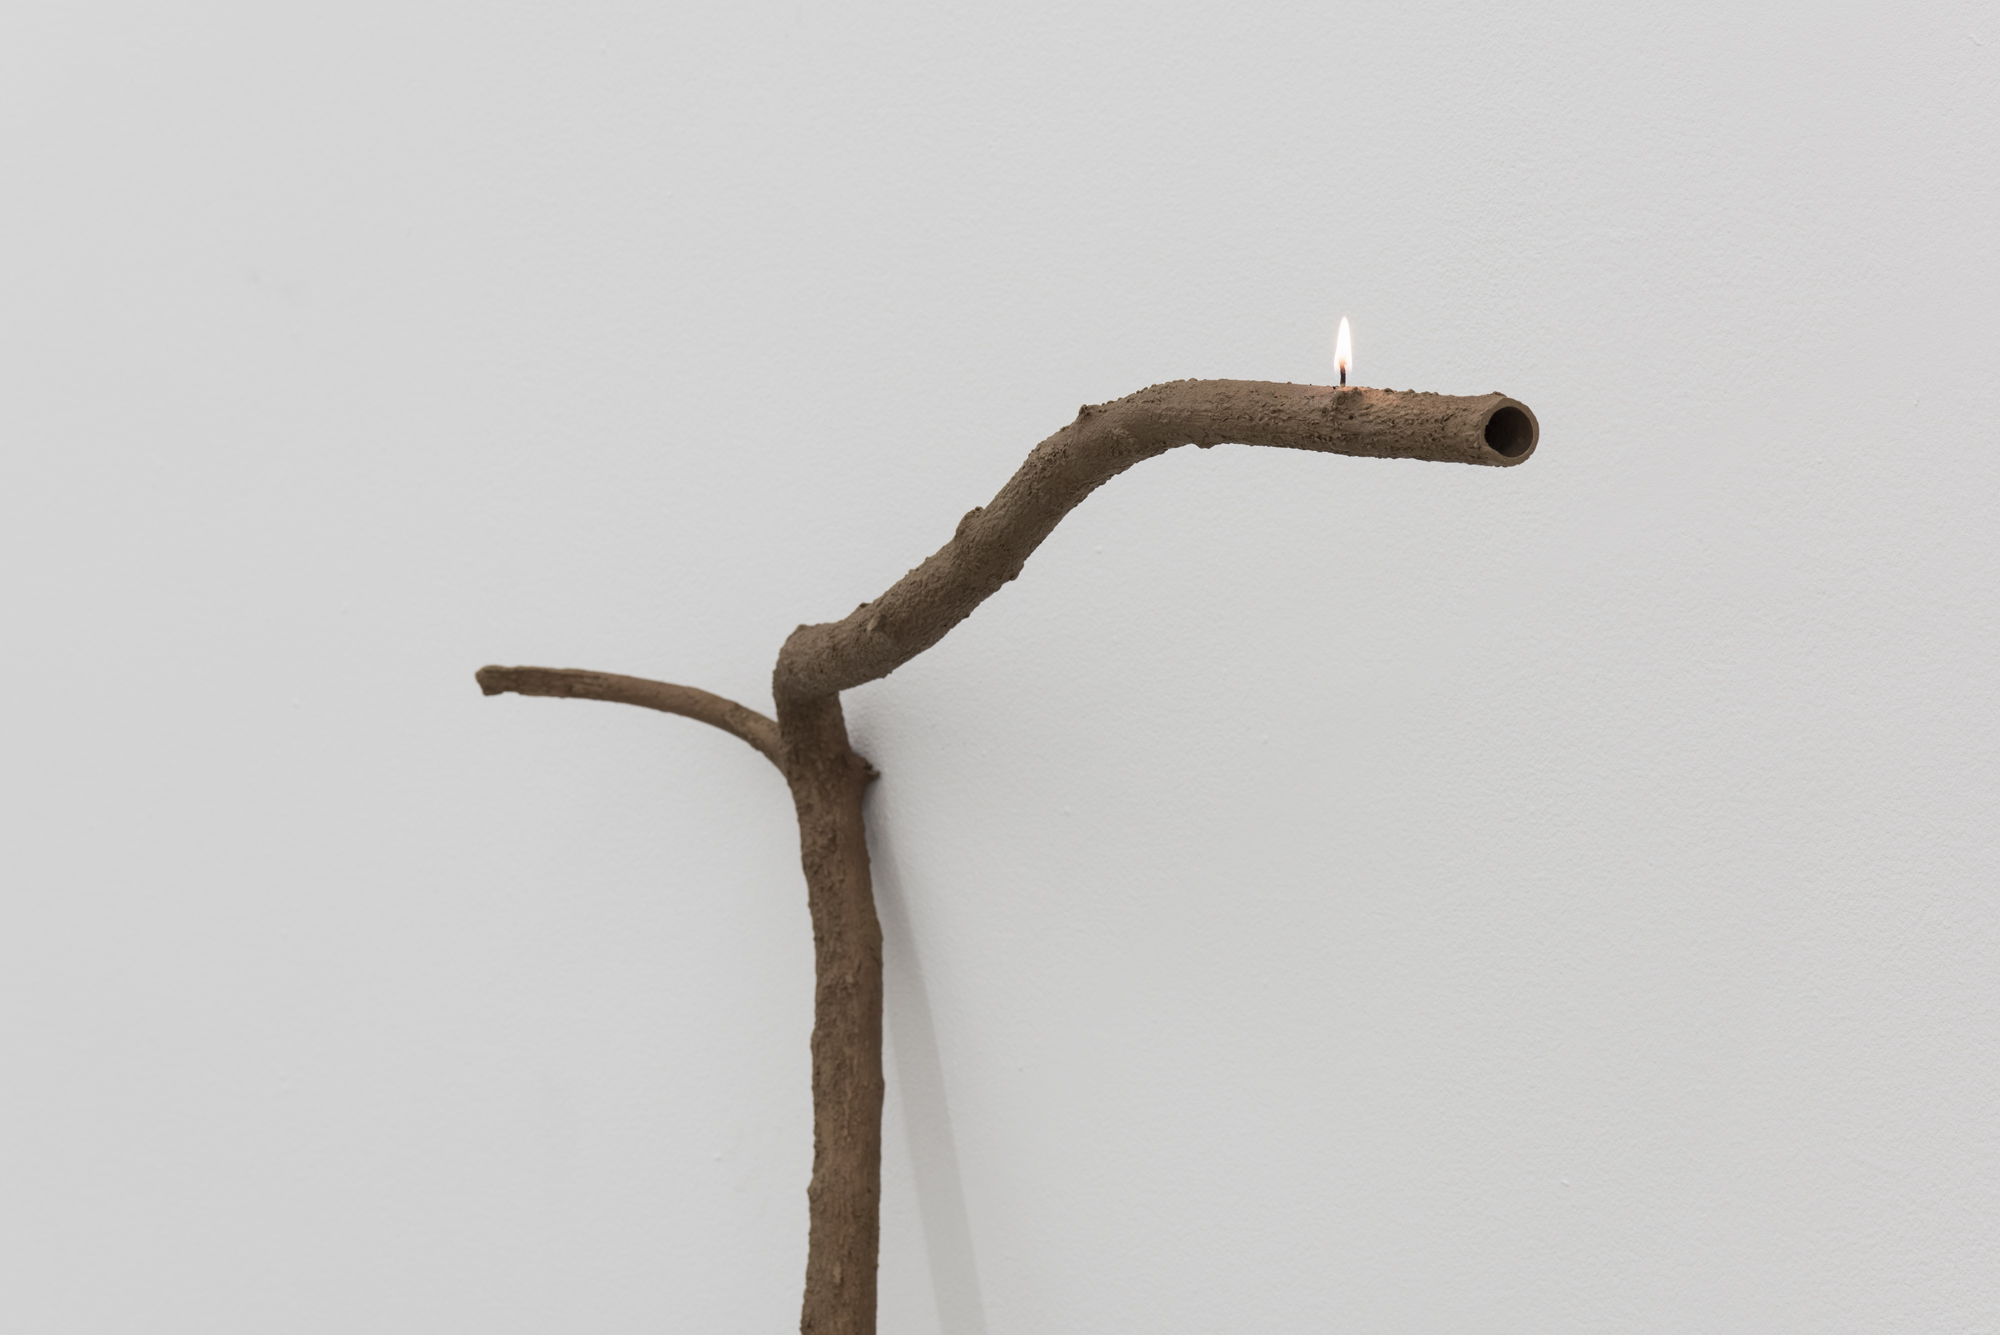 Ariel Schlesinger, At arm's length, 2017, bronze, cotton wick, lamp oil, variable dimensions